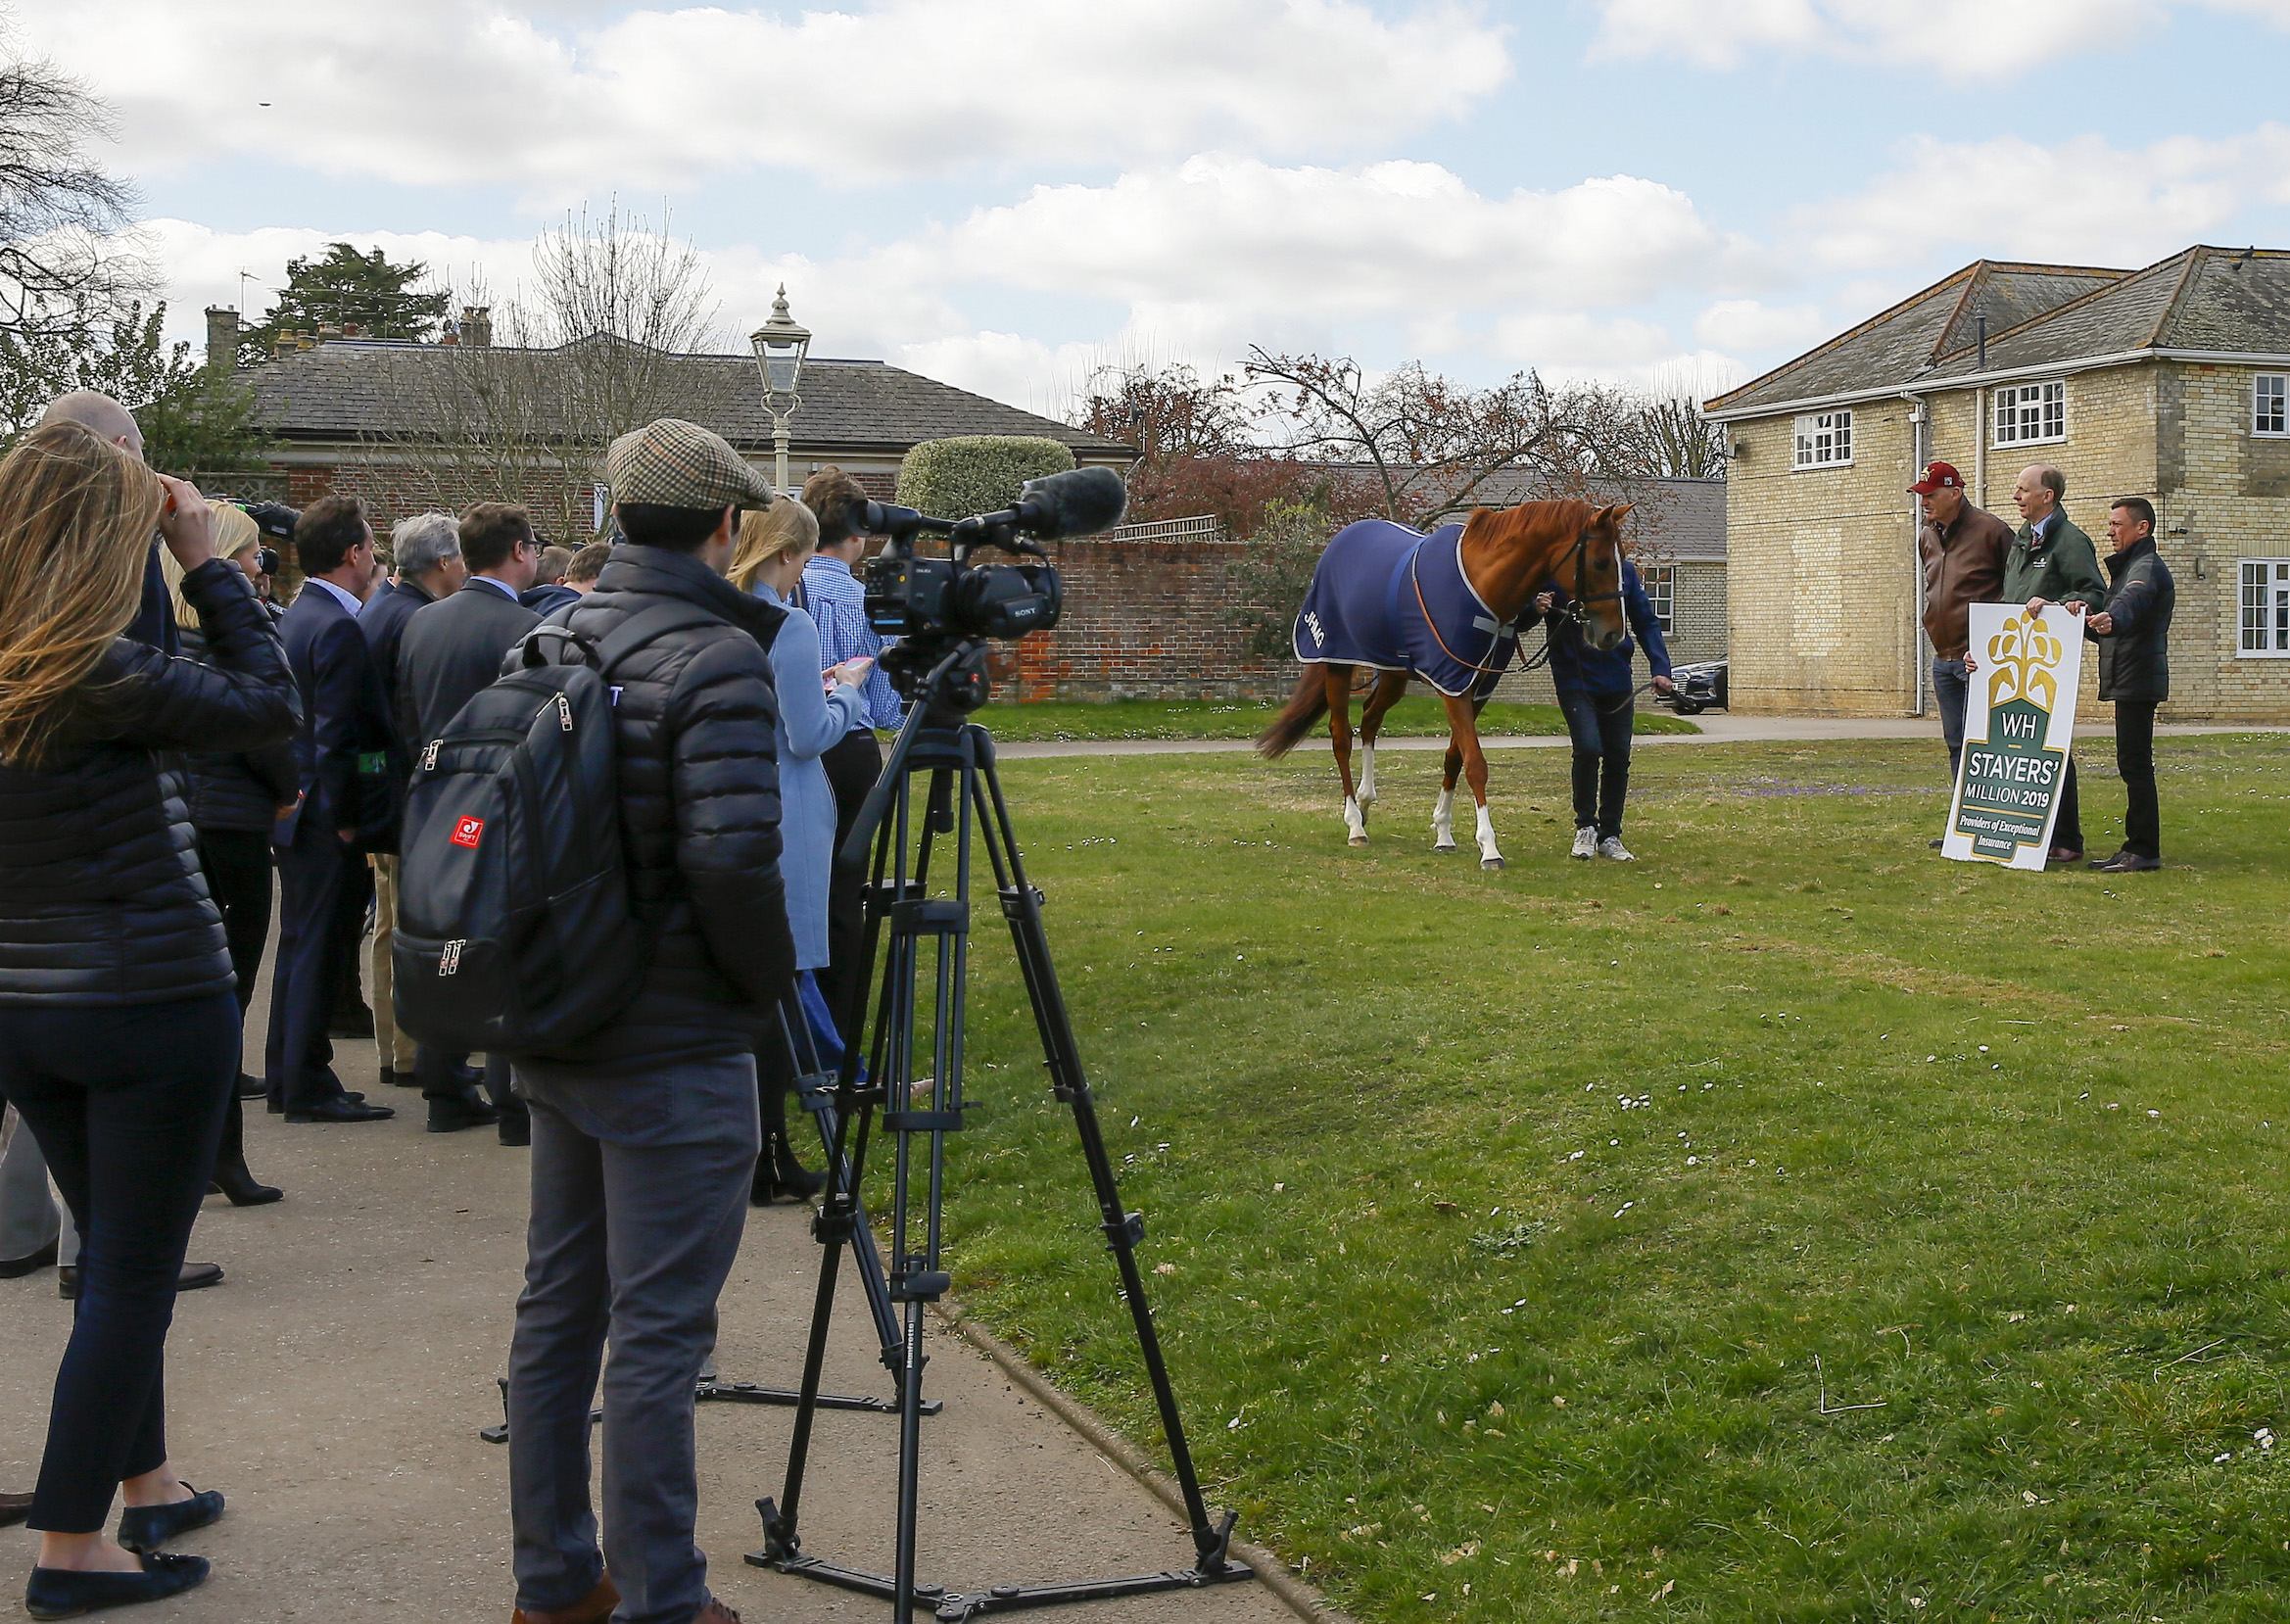 Star attraction: the media were out in force to meet the horse who won the WH Stayers' Million in 2018 and will be bidding to do it again this year. Photo: Weatherbys Hamilton